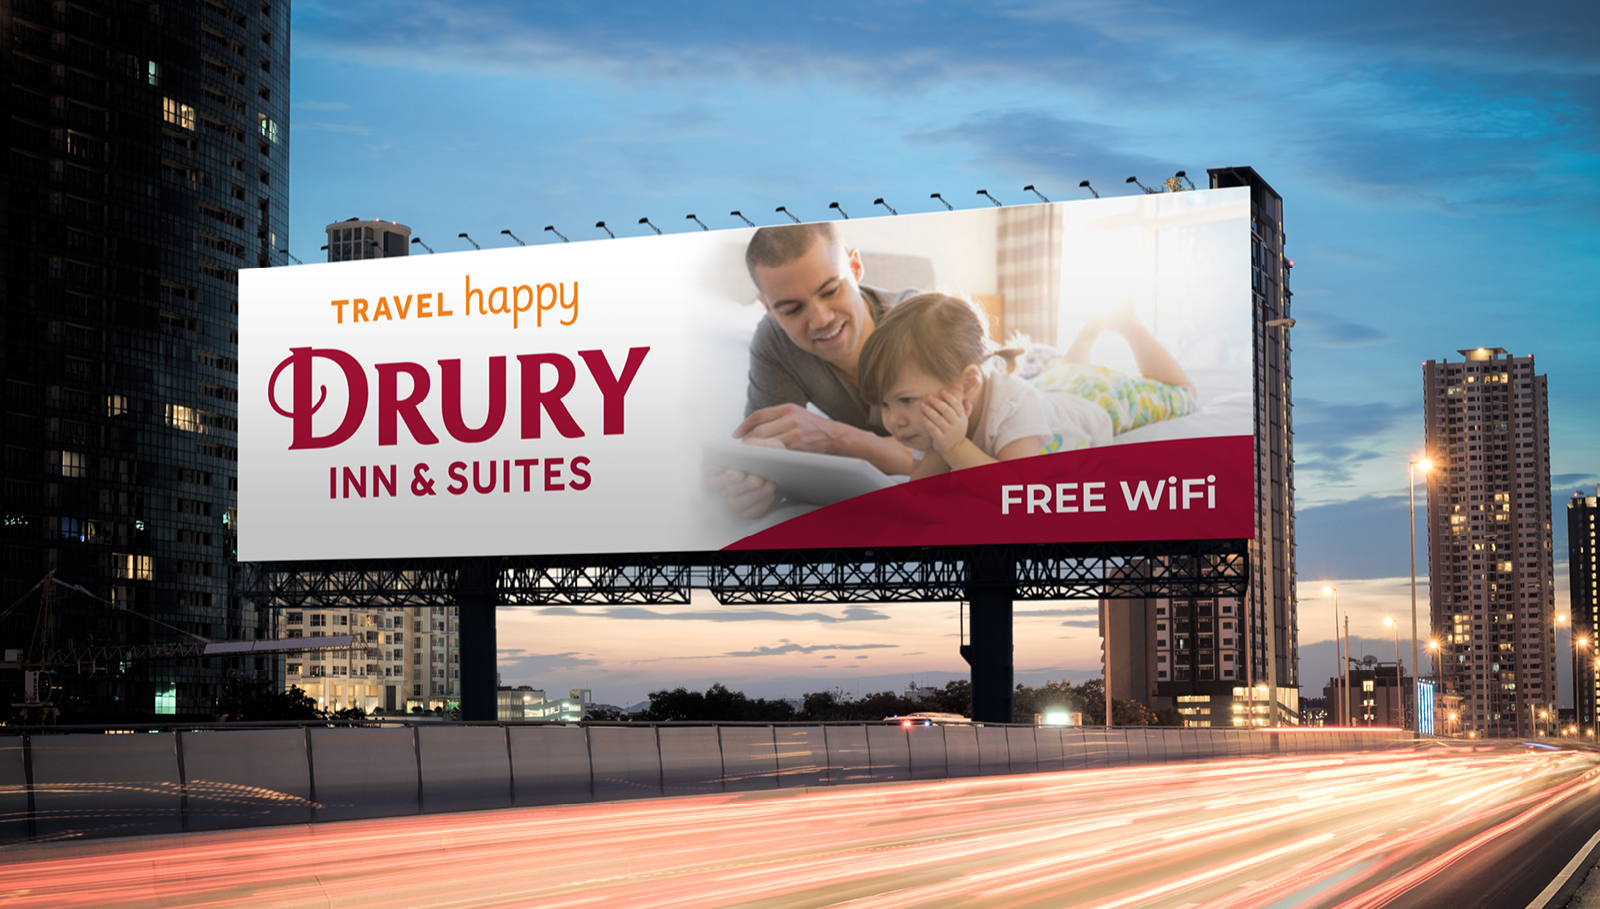 Drury Travel Happy Outdoor Board